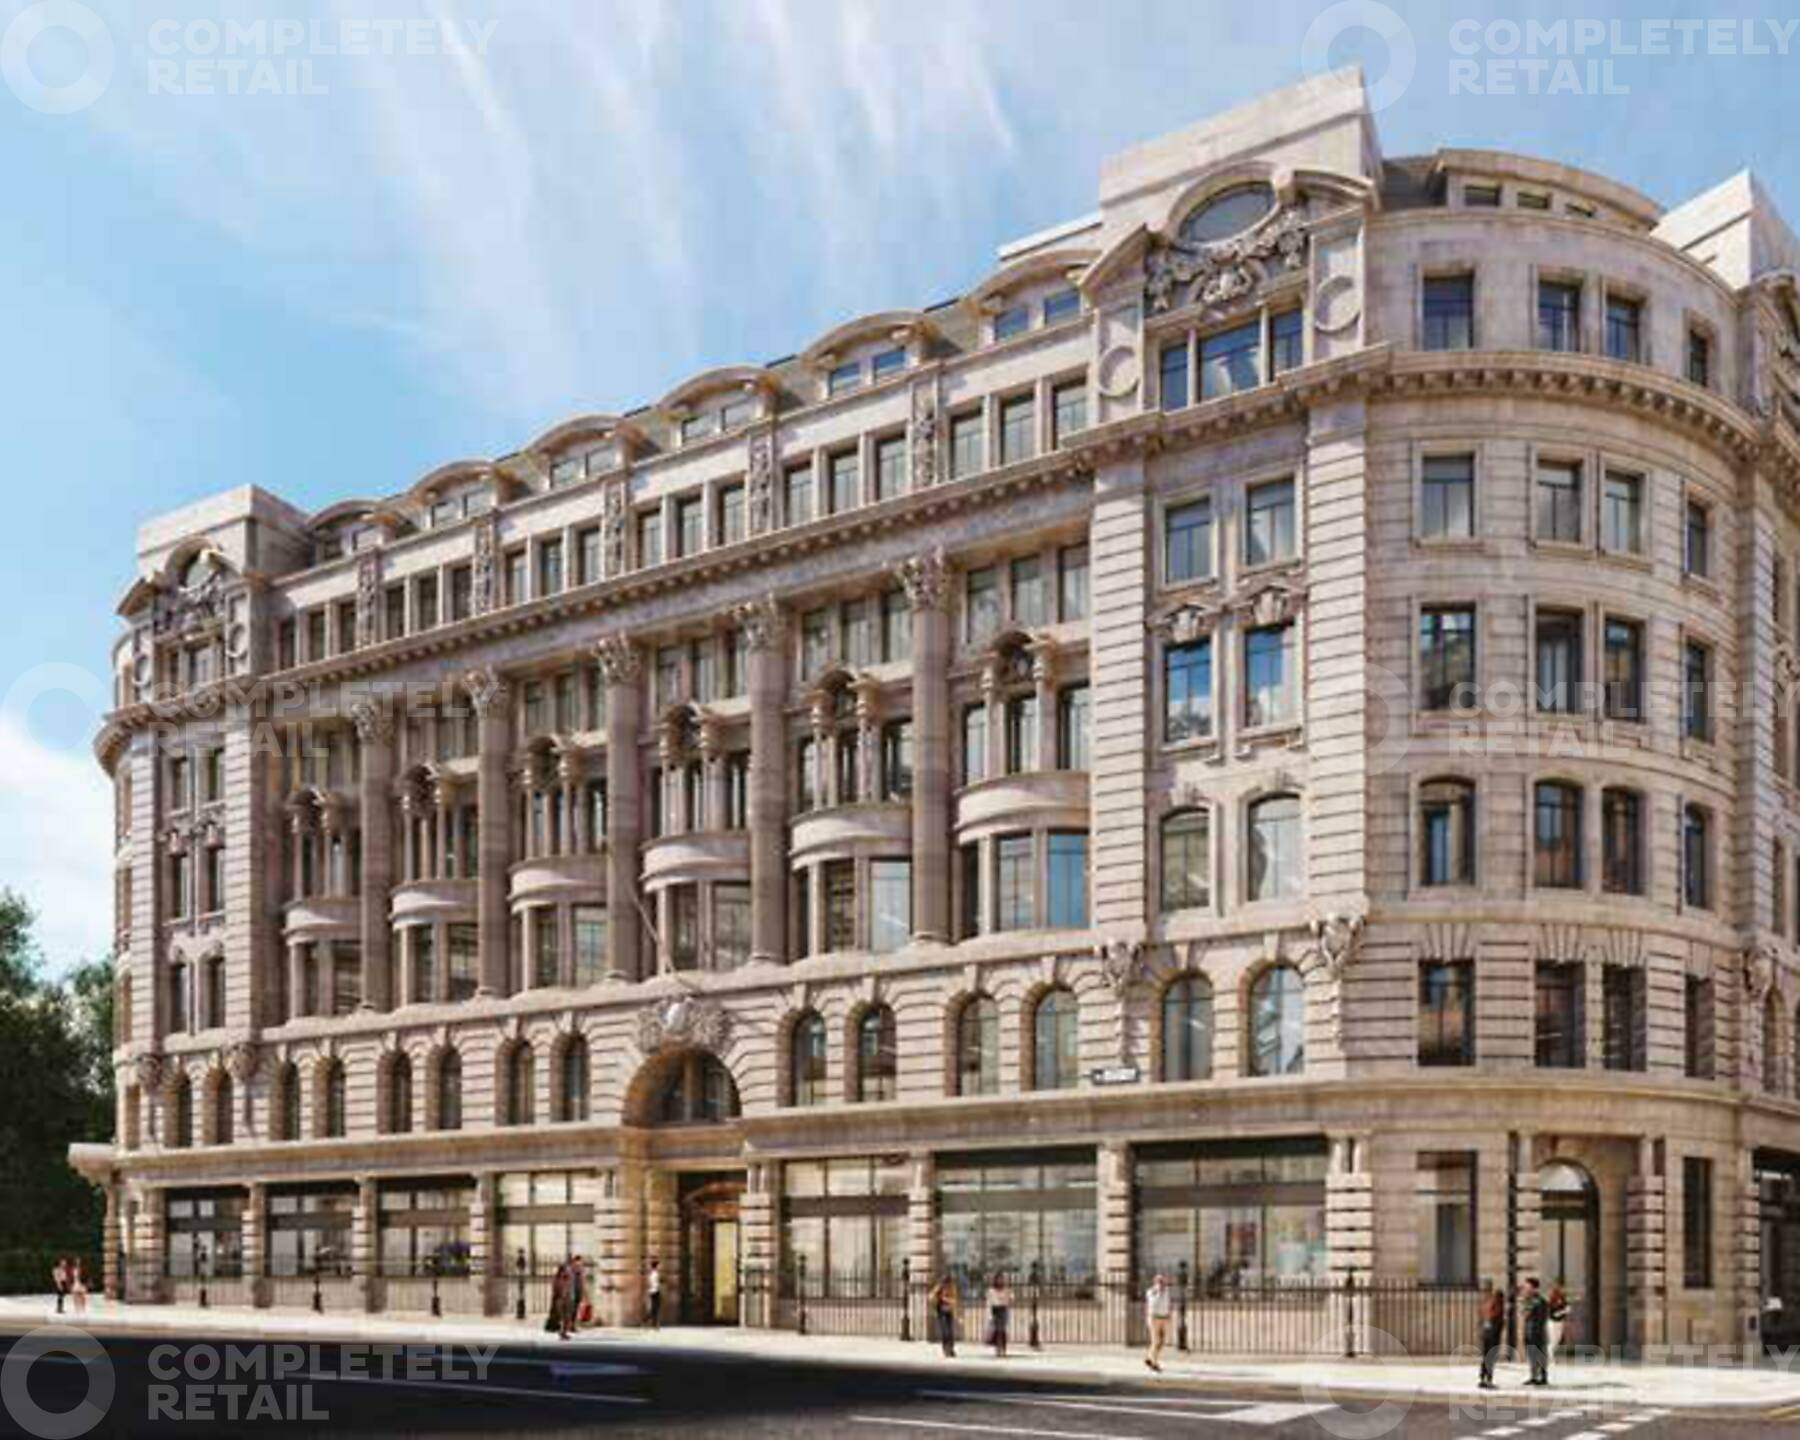 Unit 2, 31-35 Blomfield Street, London EC2